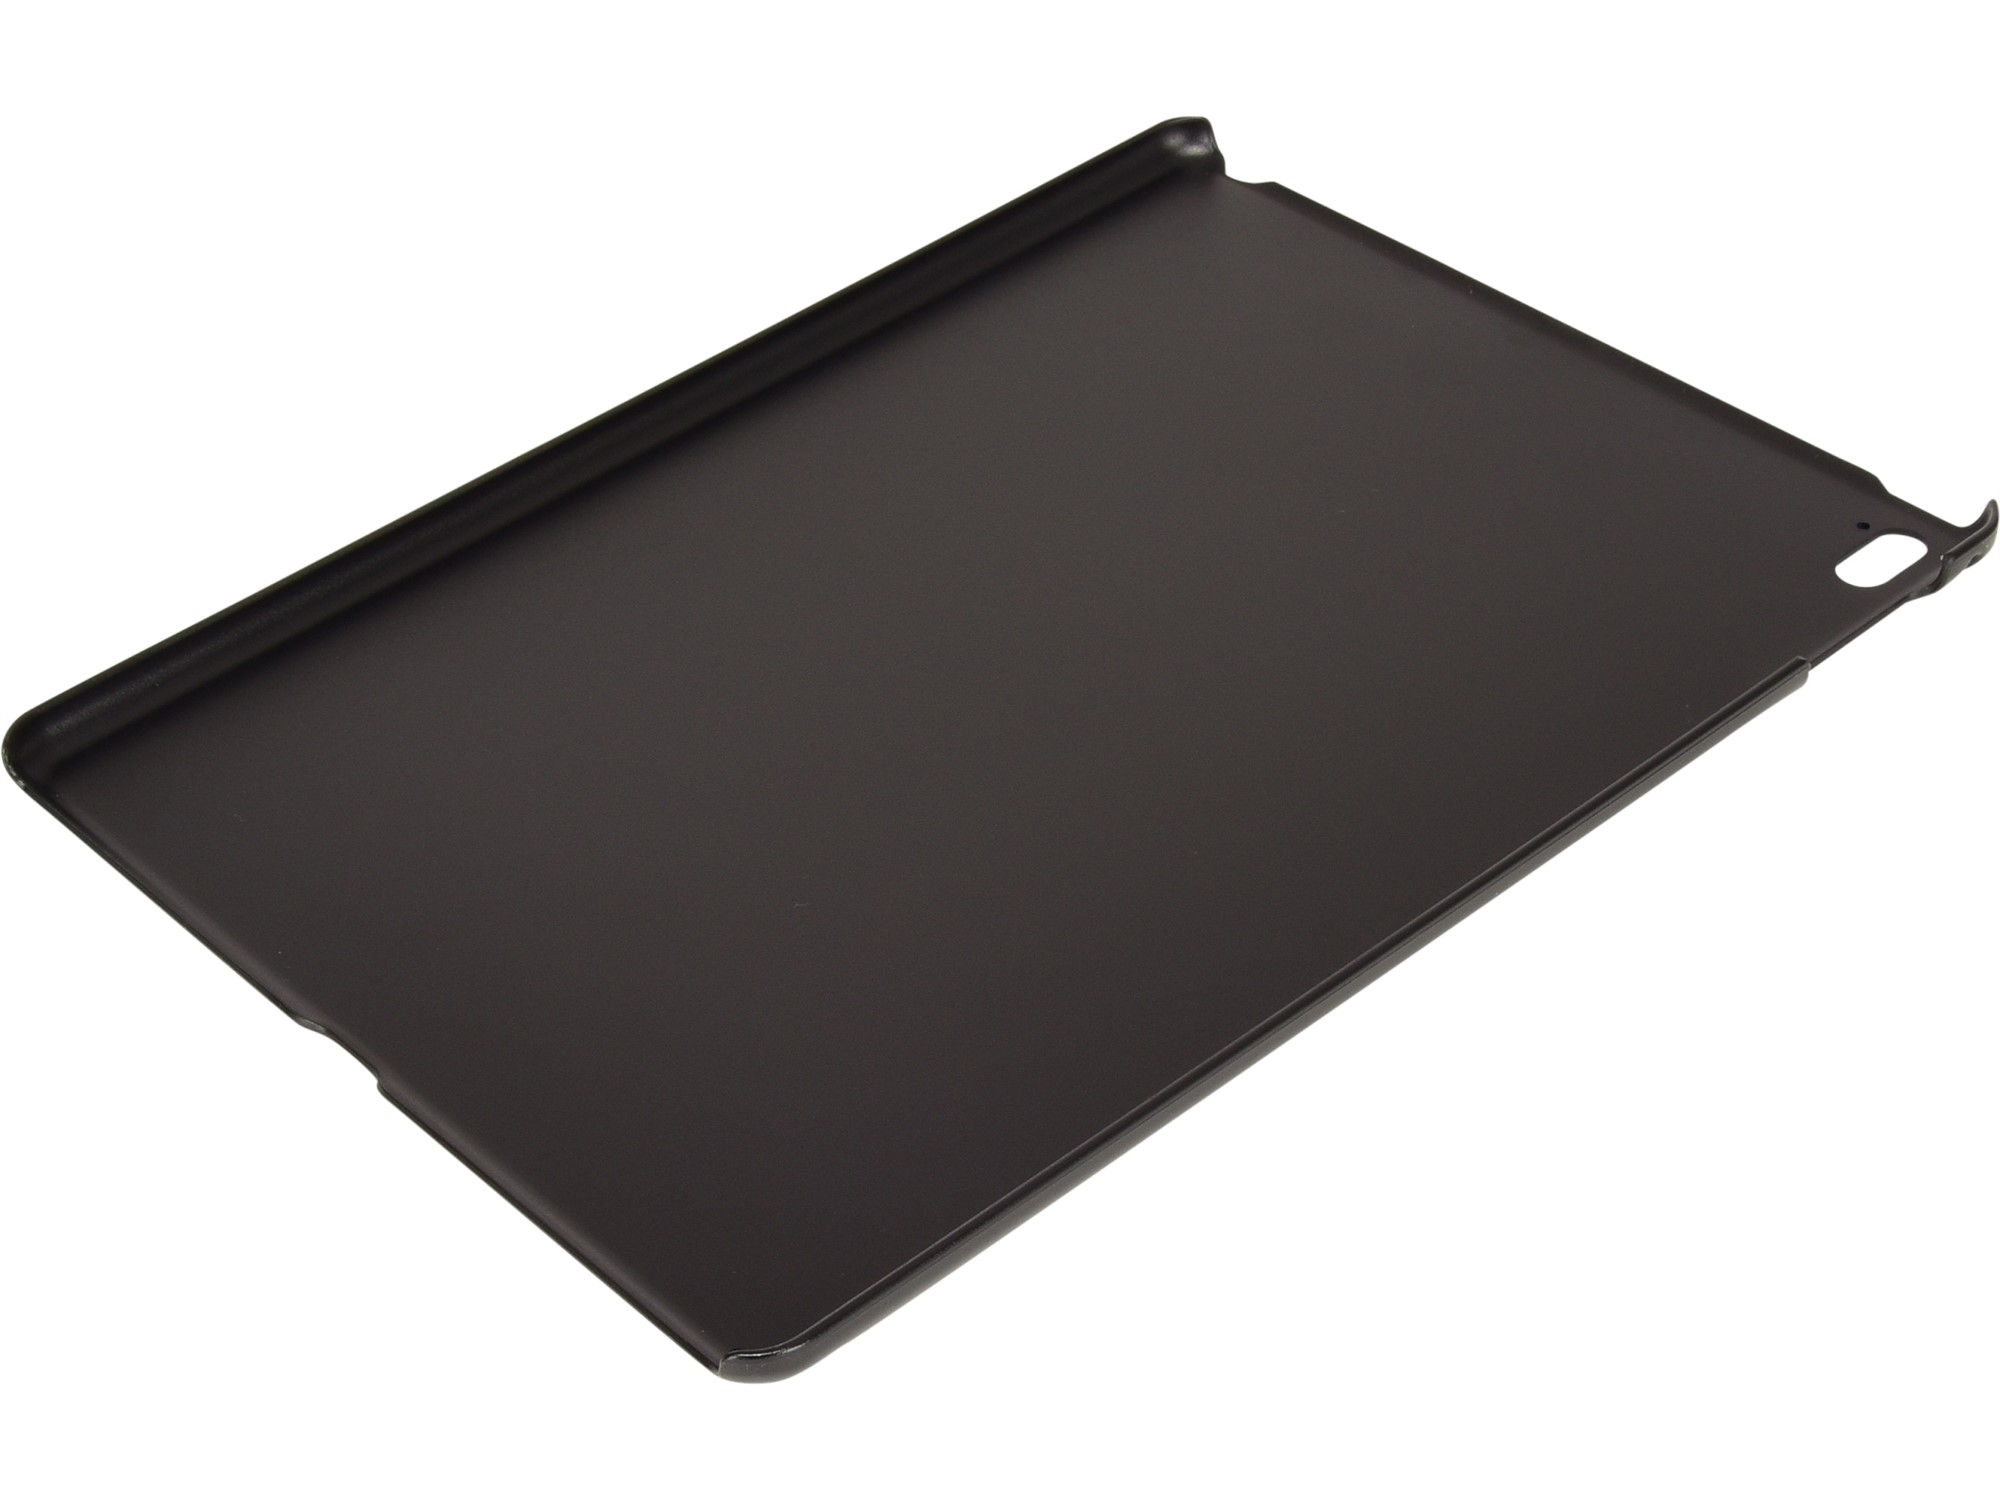 SANDBERG 405-75 COVER IPAD PRO 9.7 HARD BLACK